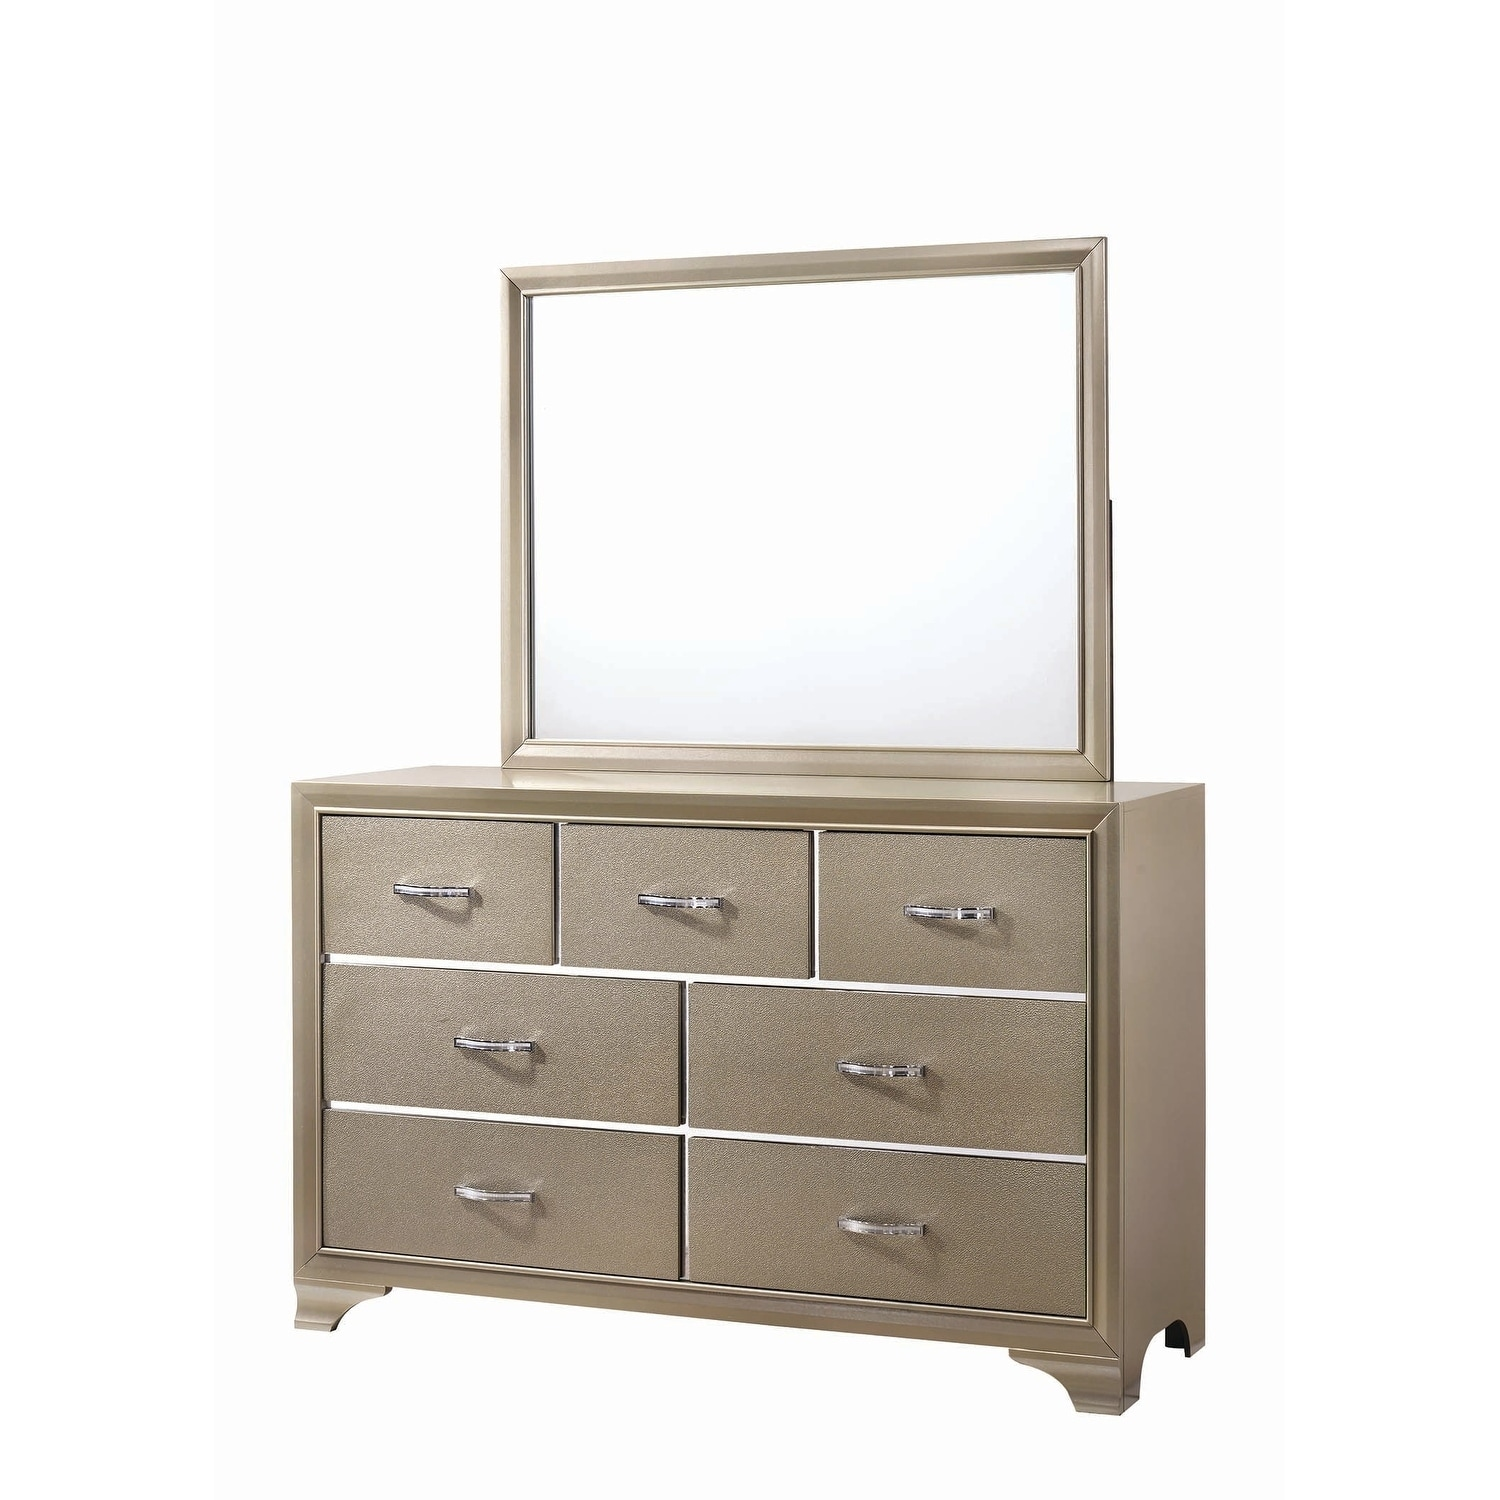 Shop silver orchid transitional champagne dresser on sale free shipping today overstock com 23600739